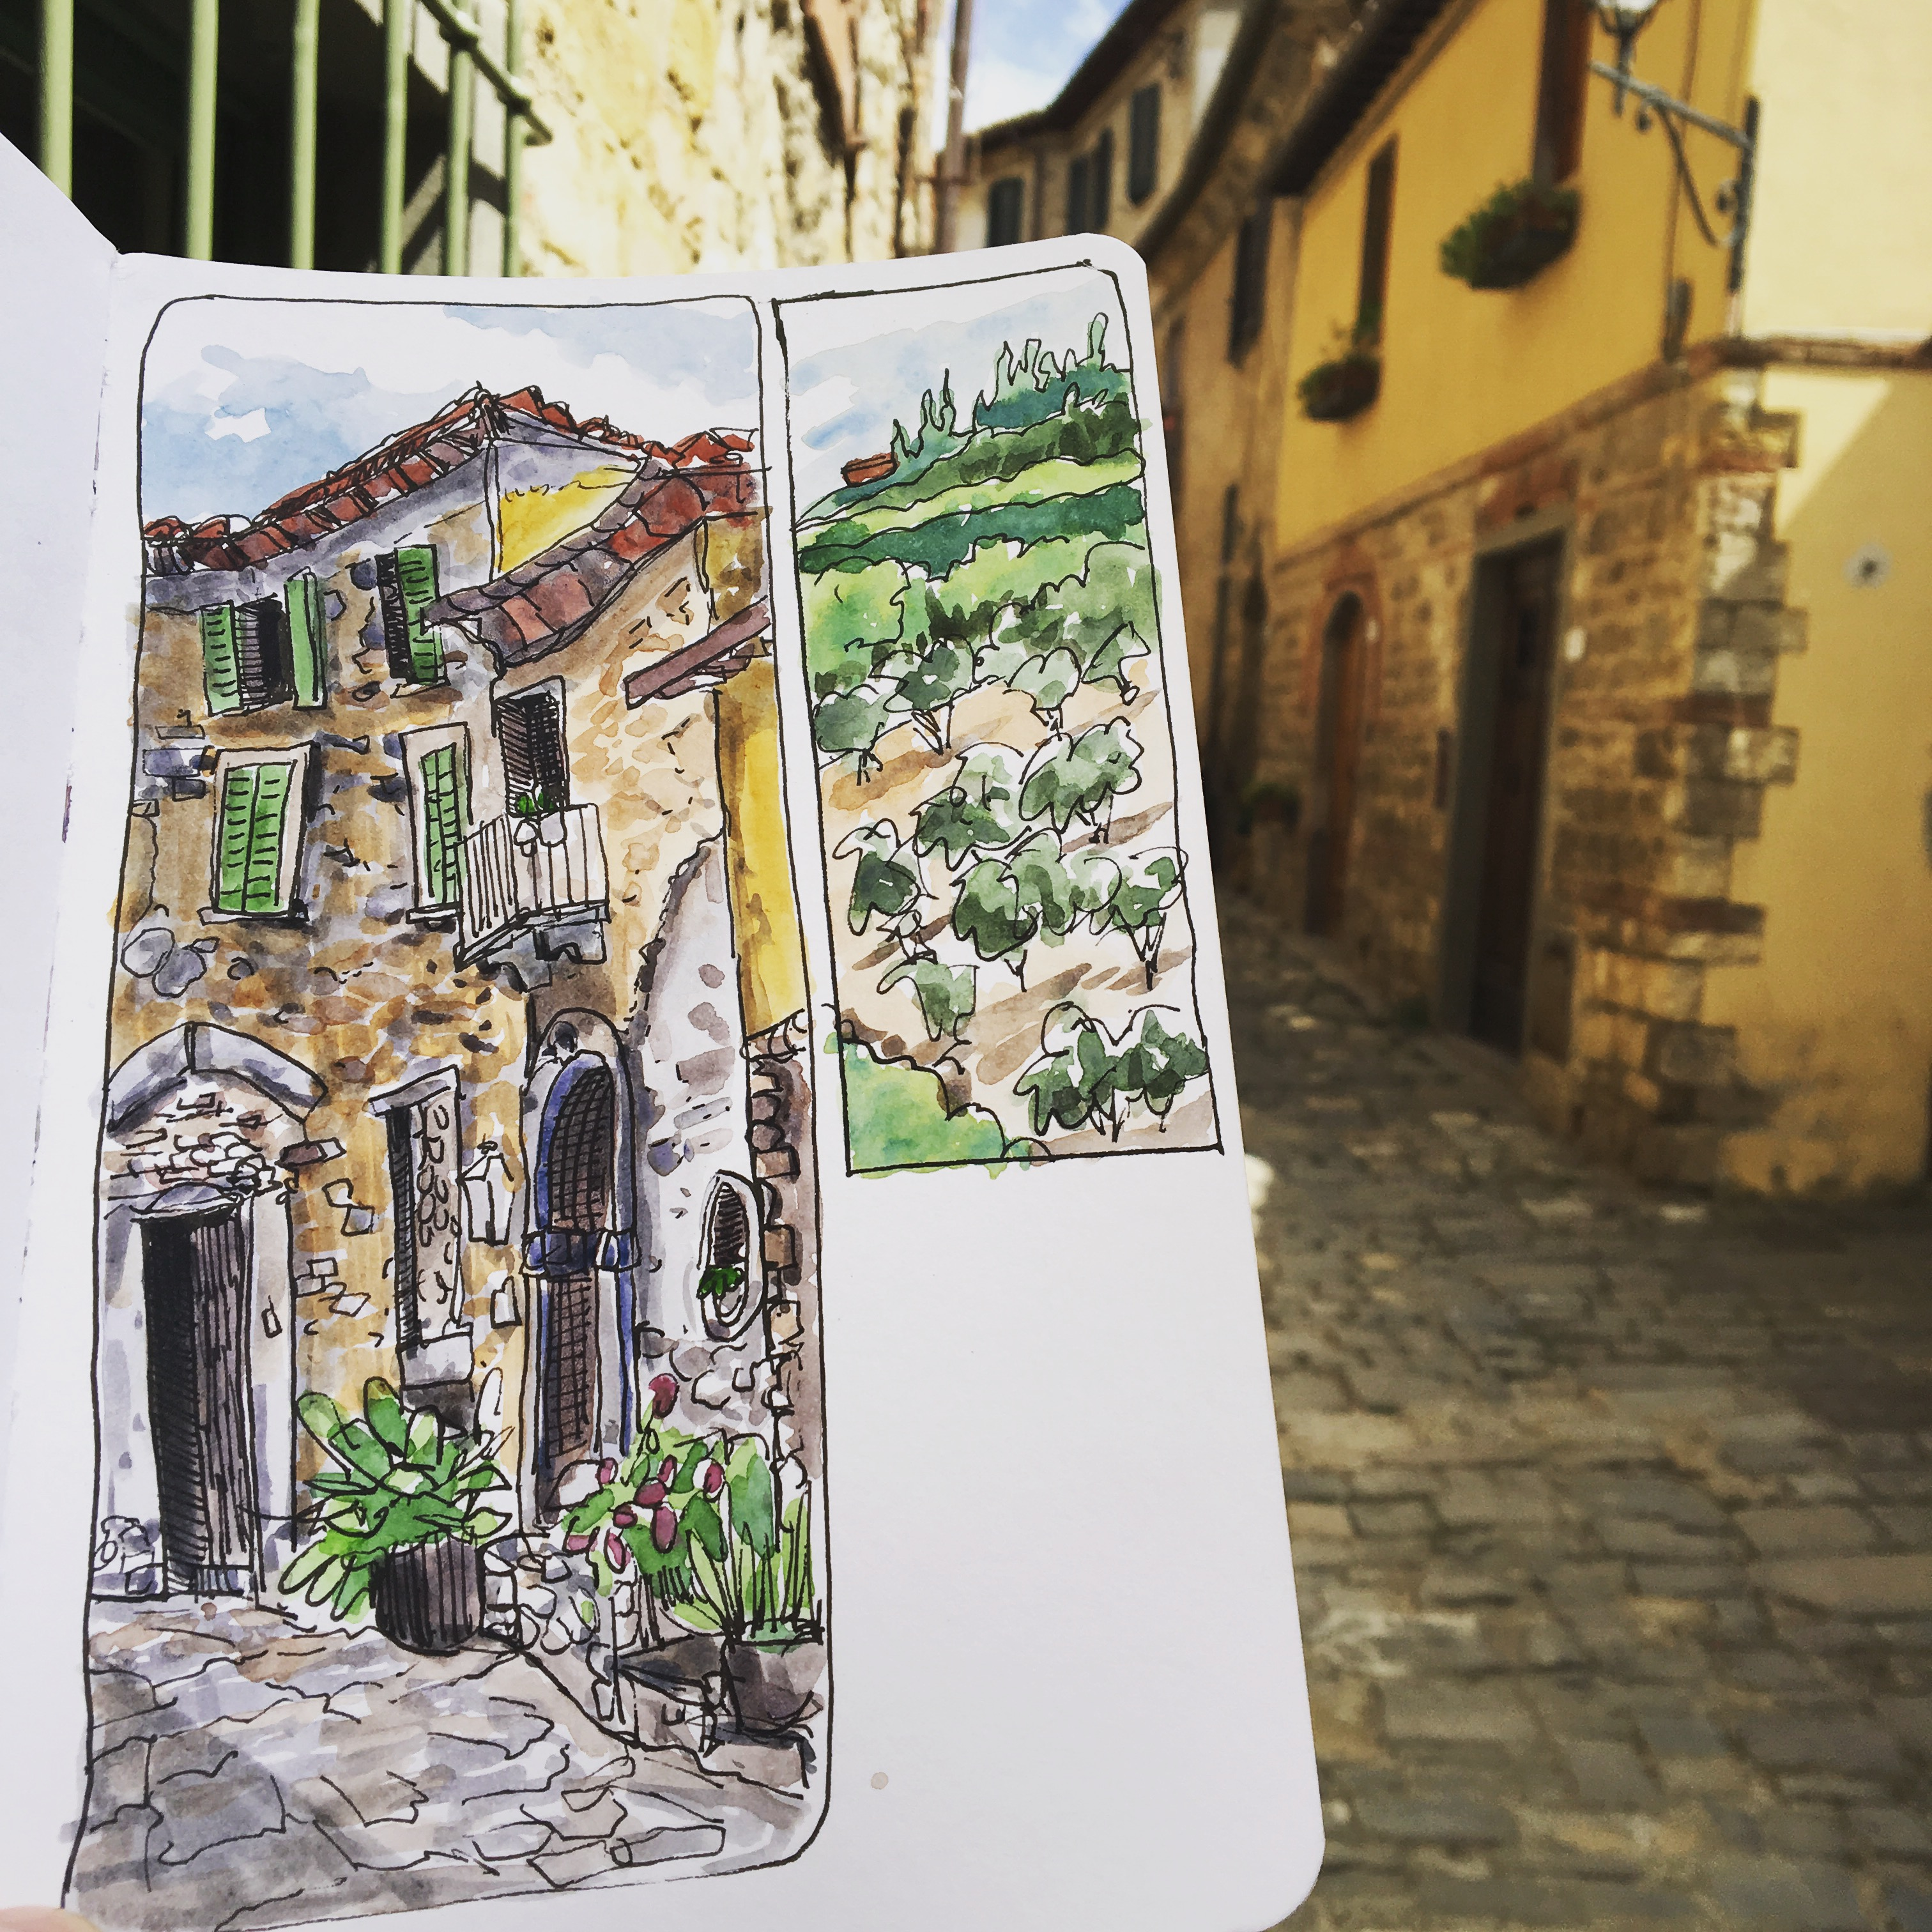 A sketch on the streets of Montefioralle, Italy